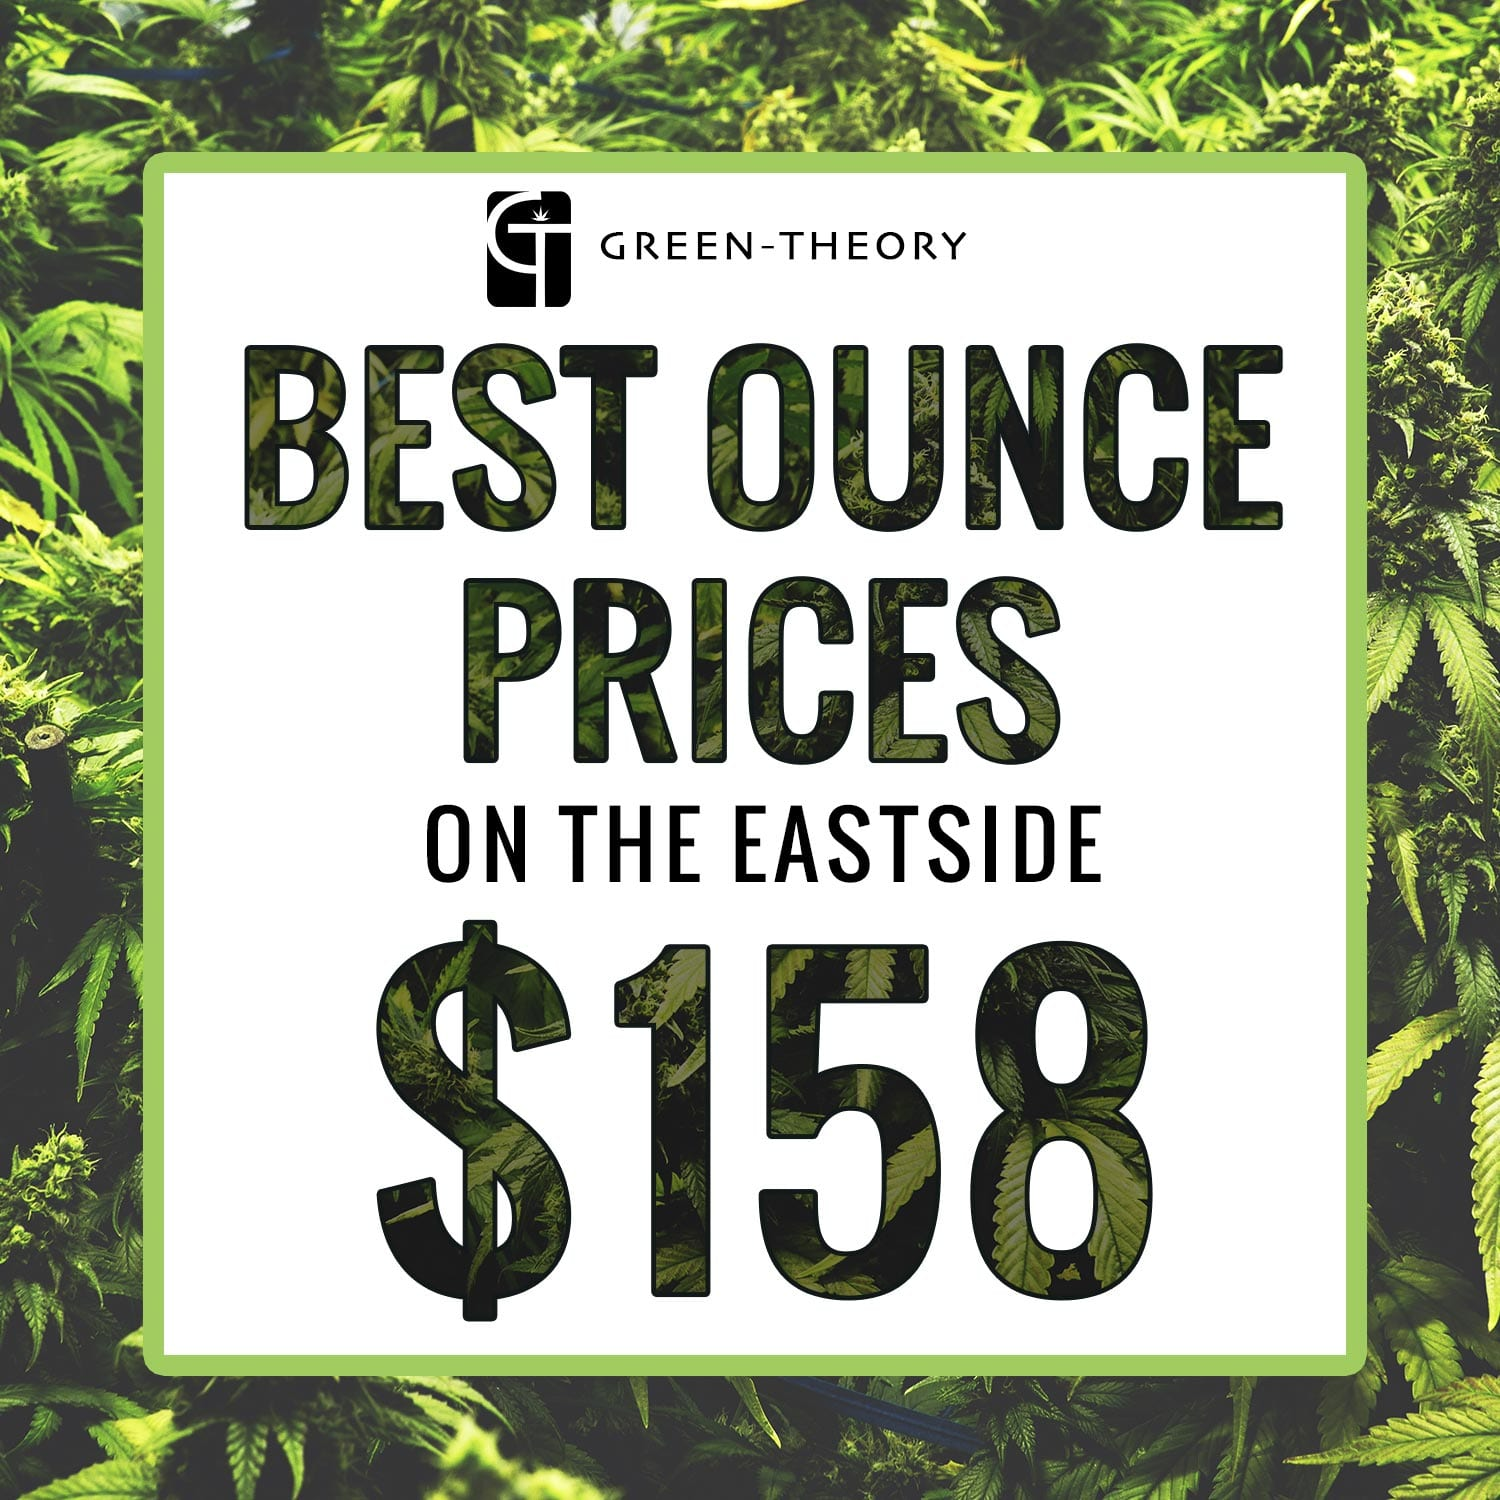 Best-Ounce-Prices-WEB